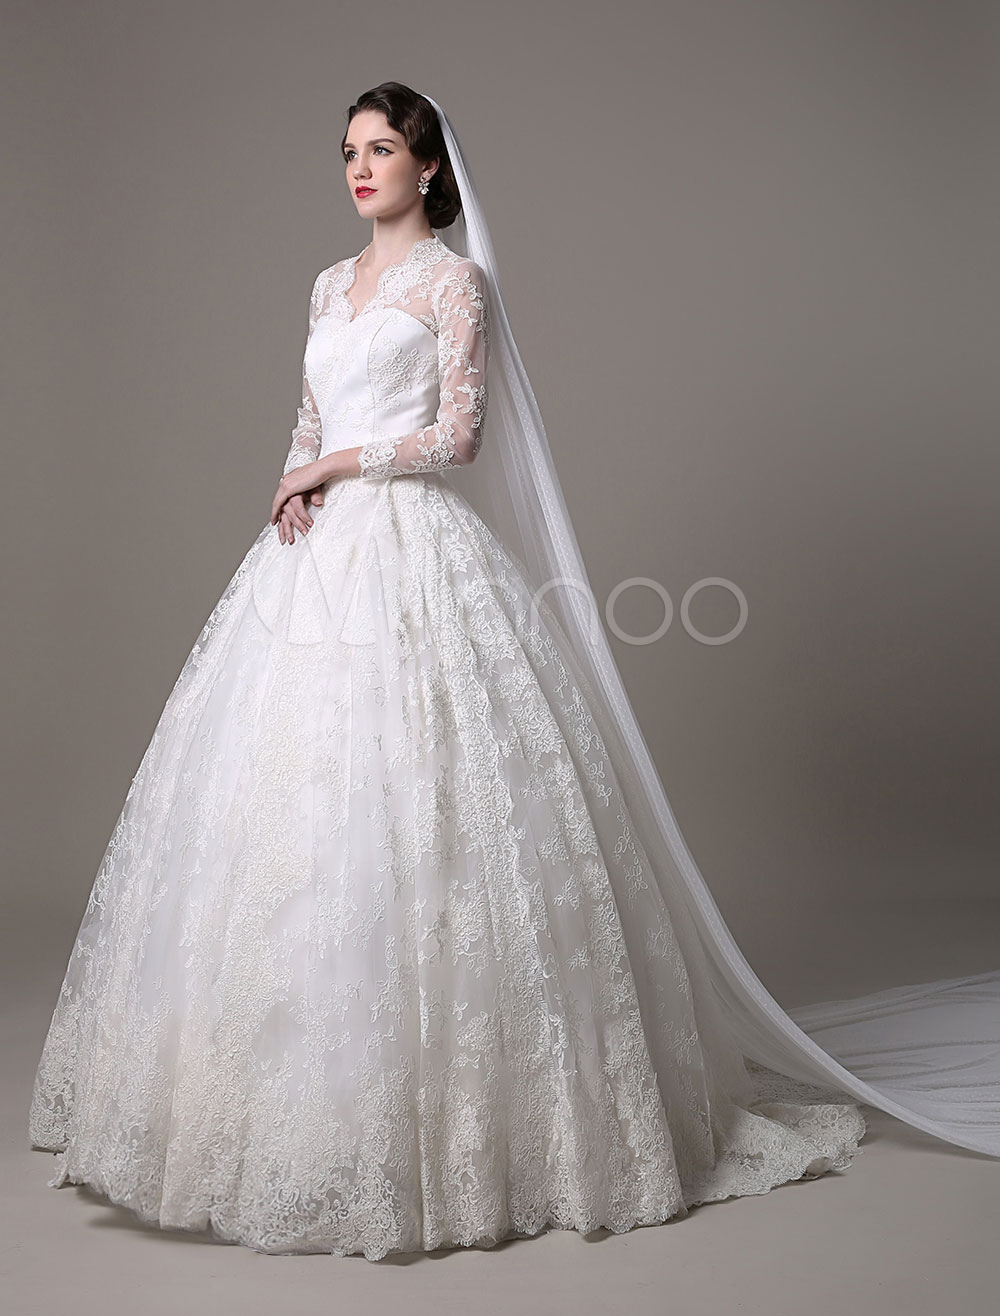 Kate Middleton Royal Wedding Dress Vintage Lace With V-Neck And Long ...